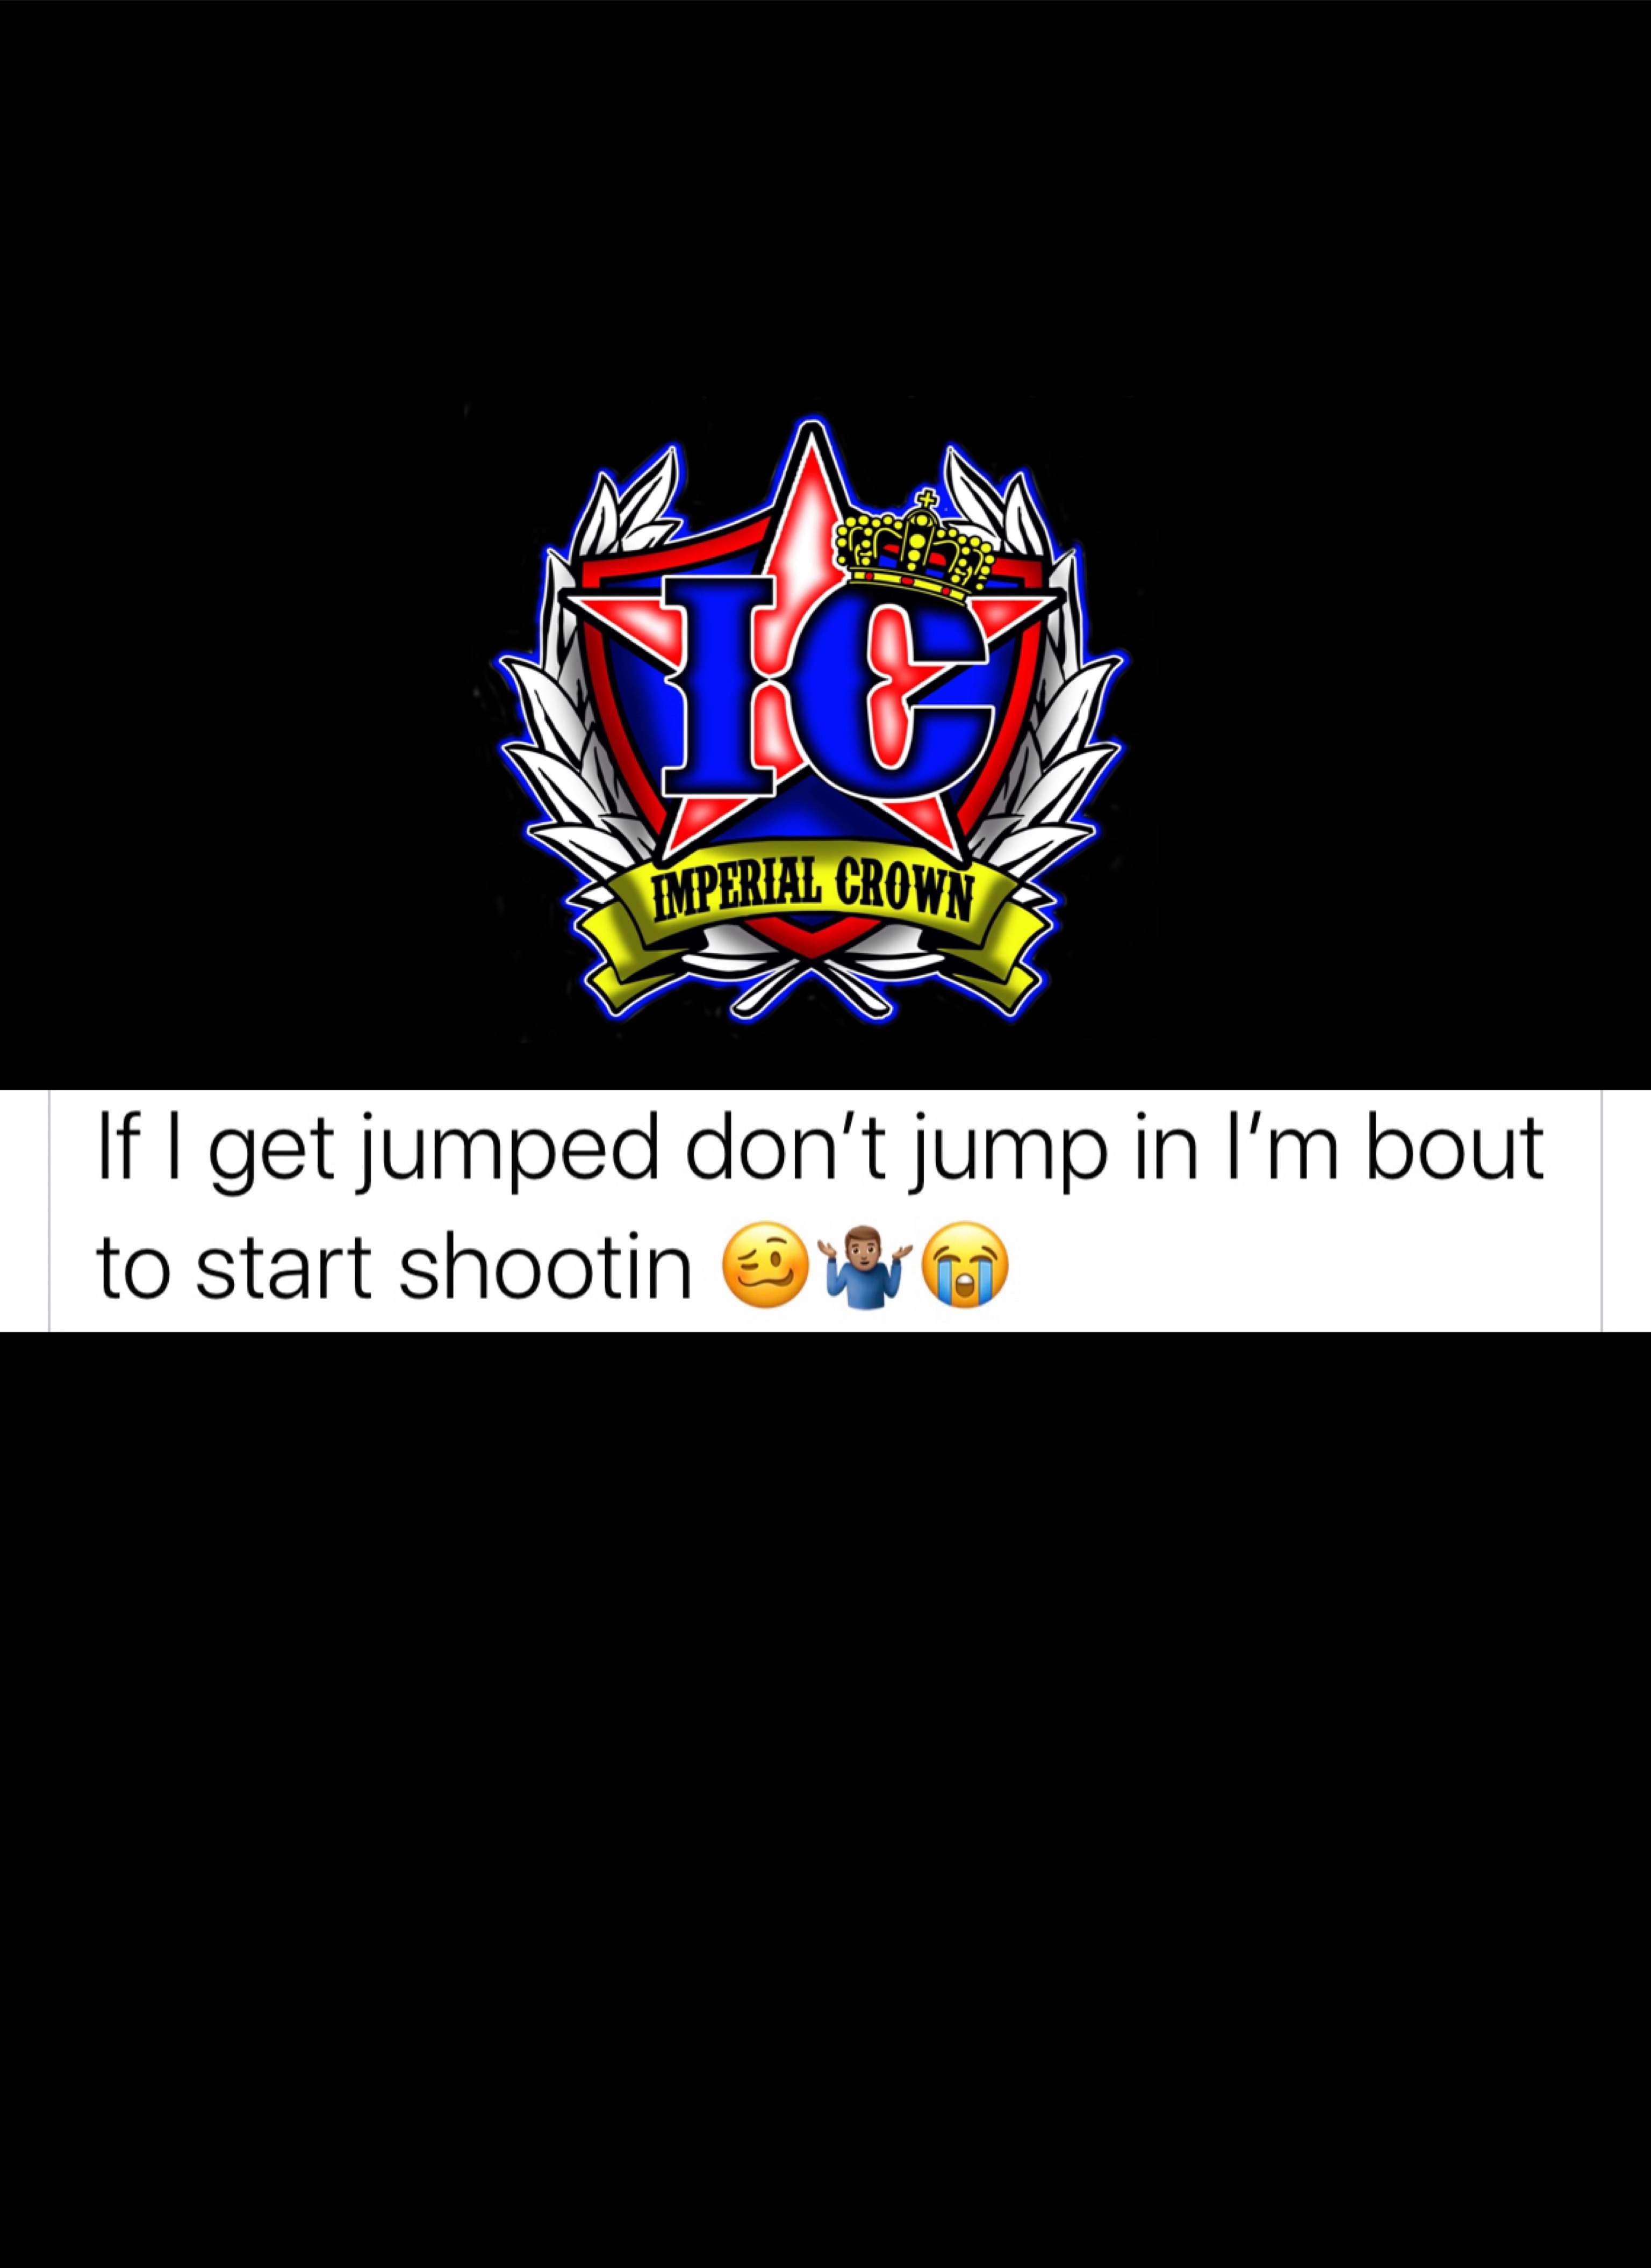 If I get jumped don't jump in I'm bout to start shootin